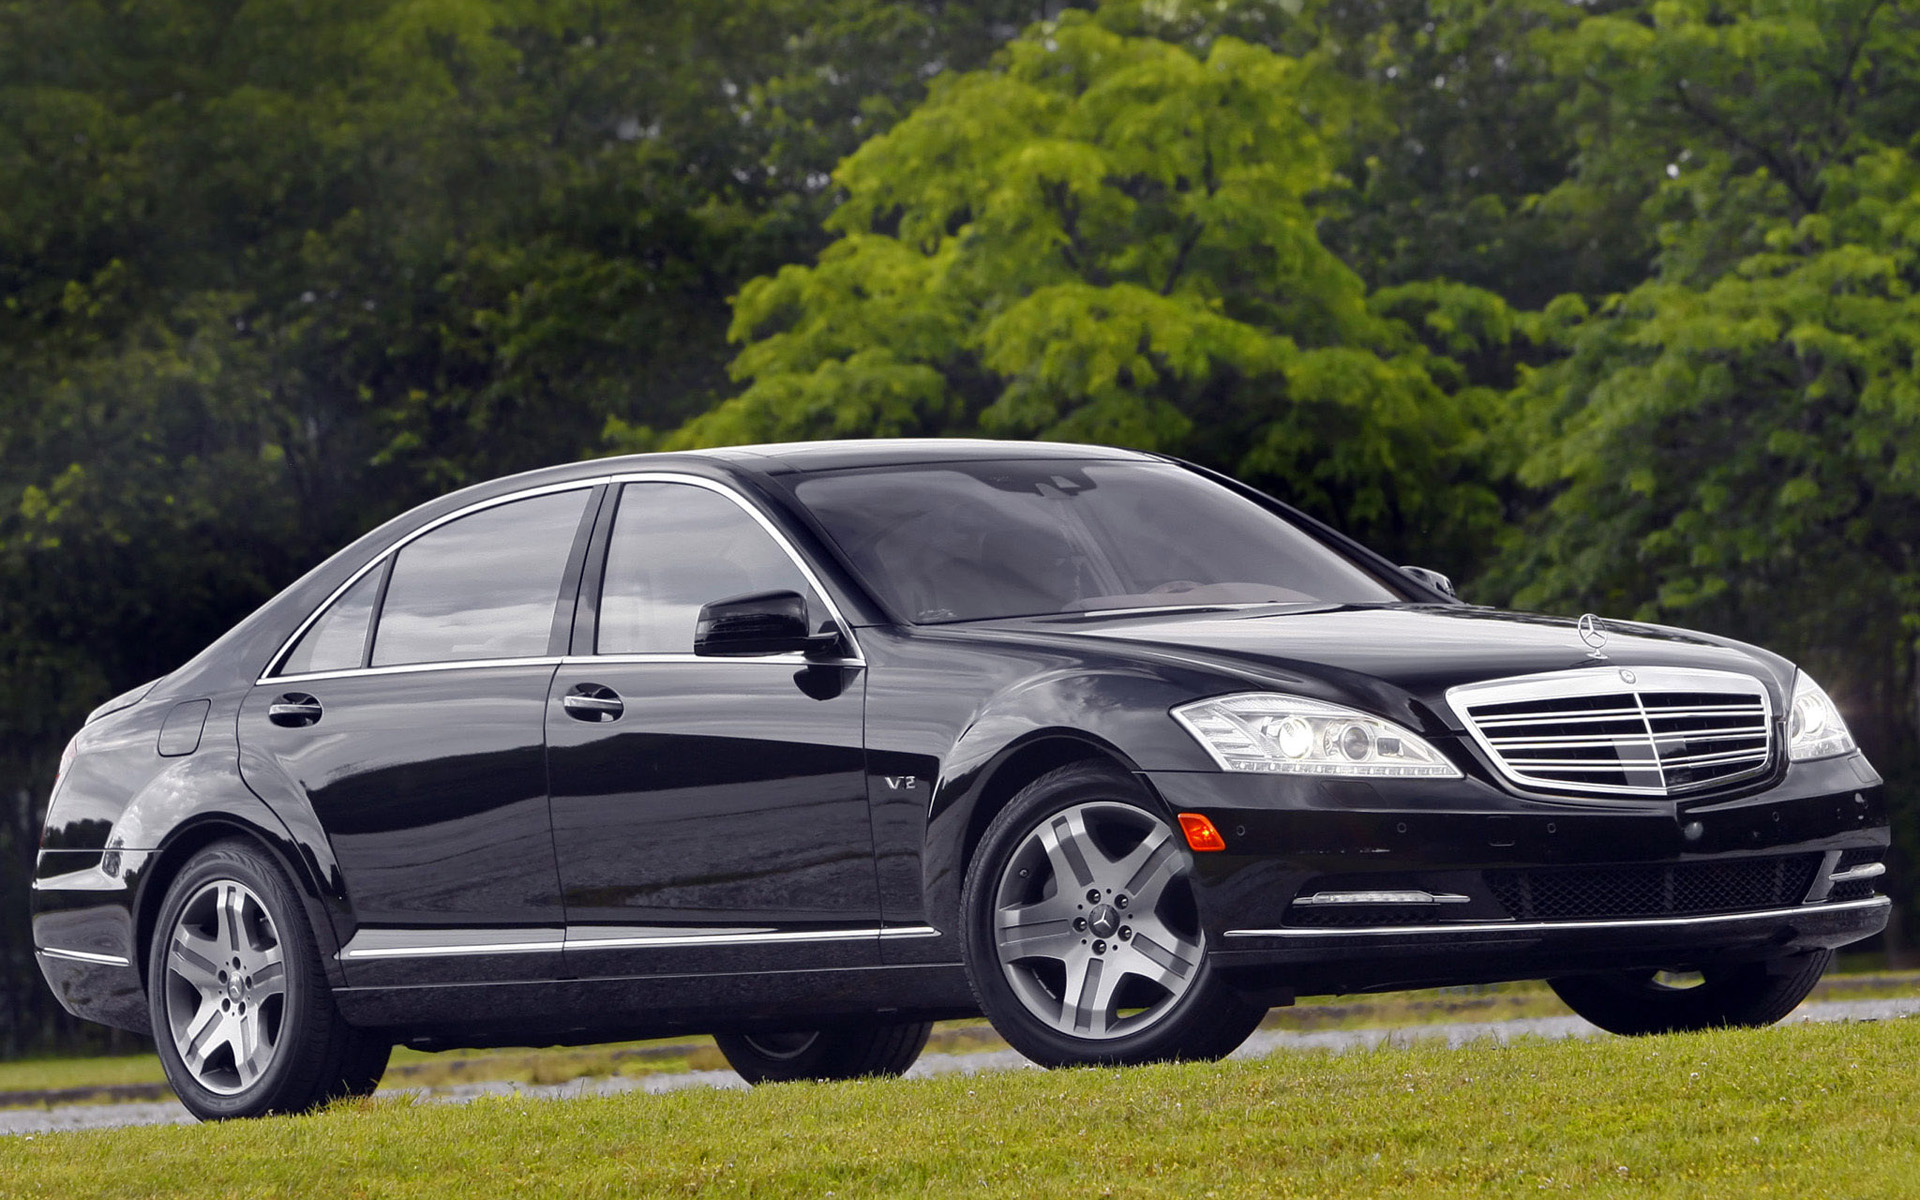 mercedes benz usa 9 wide car wallpaper ForMercedes Benz Ua